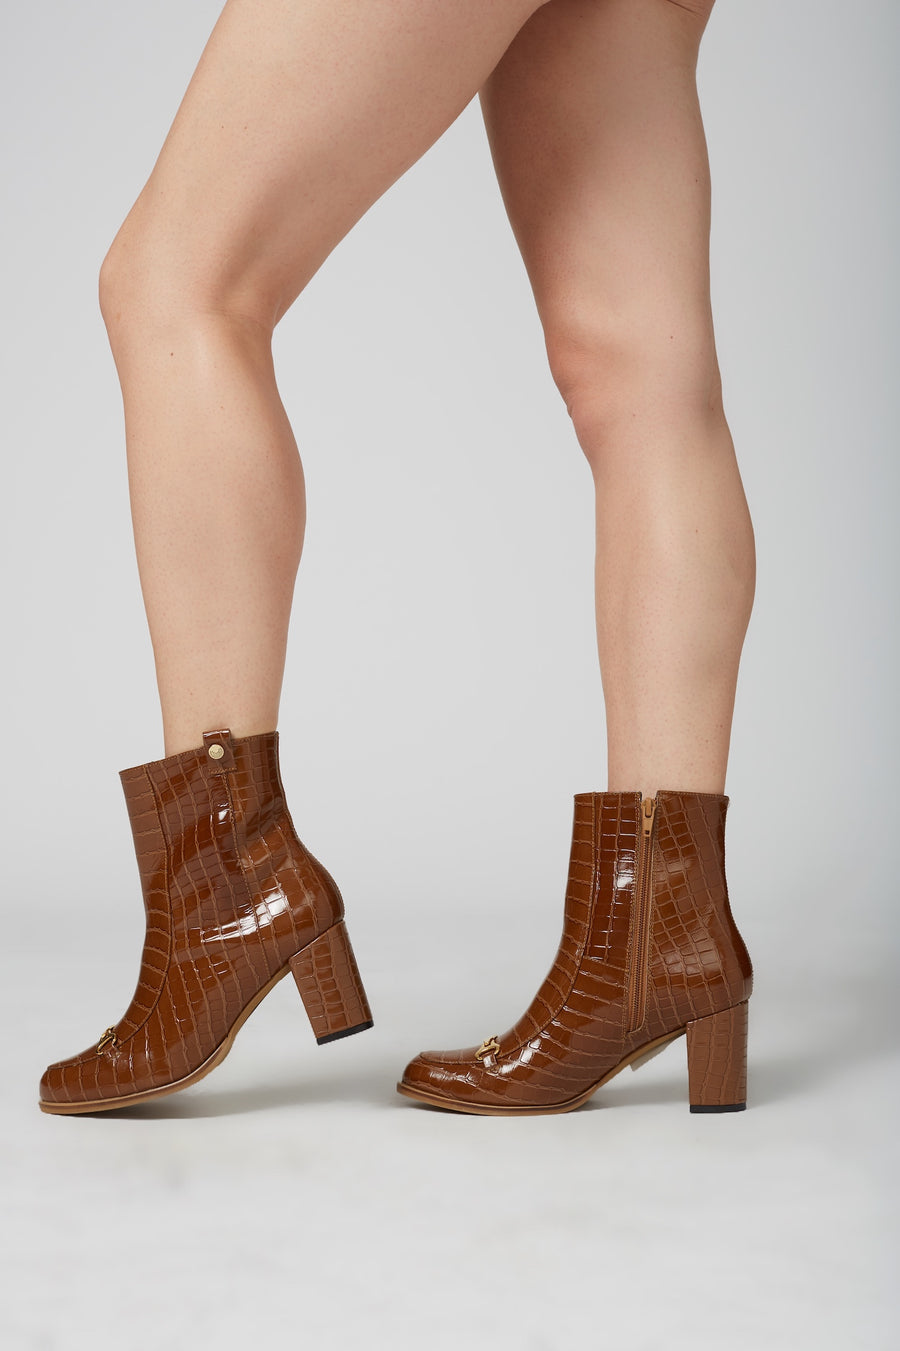 Hamburg ankle boots in tan leather